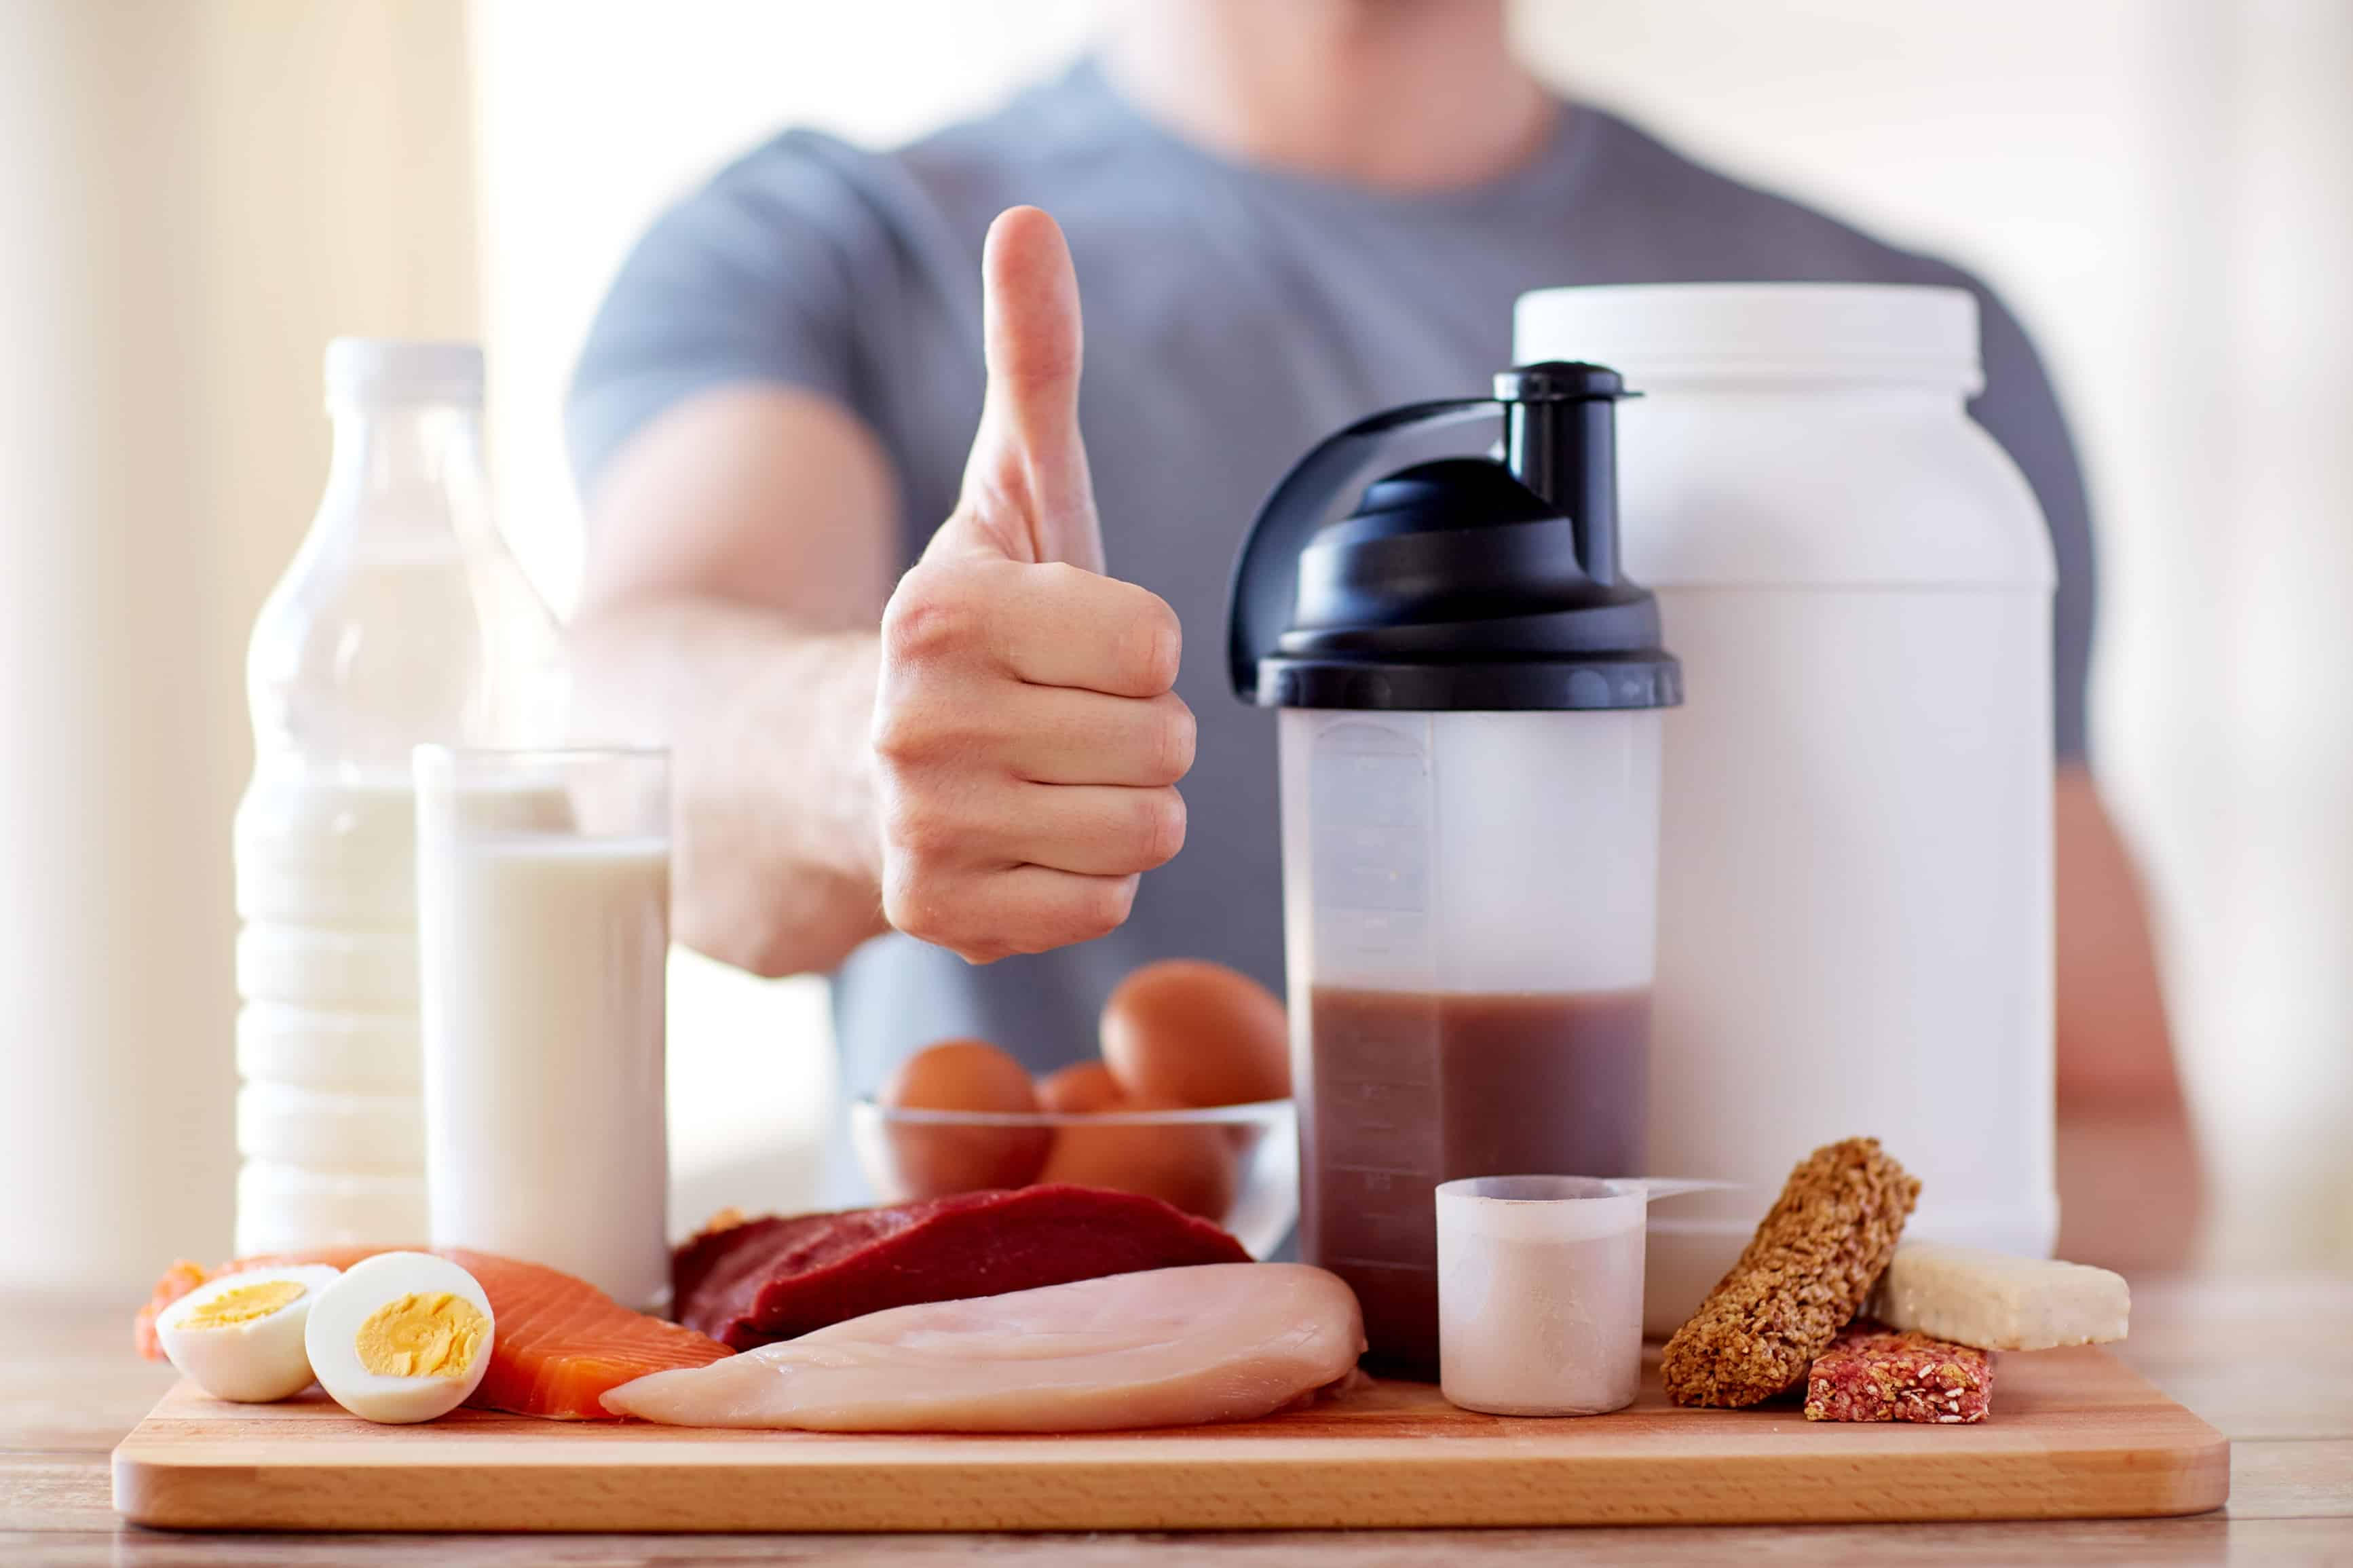 Bulk up with this muscle building recipes